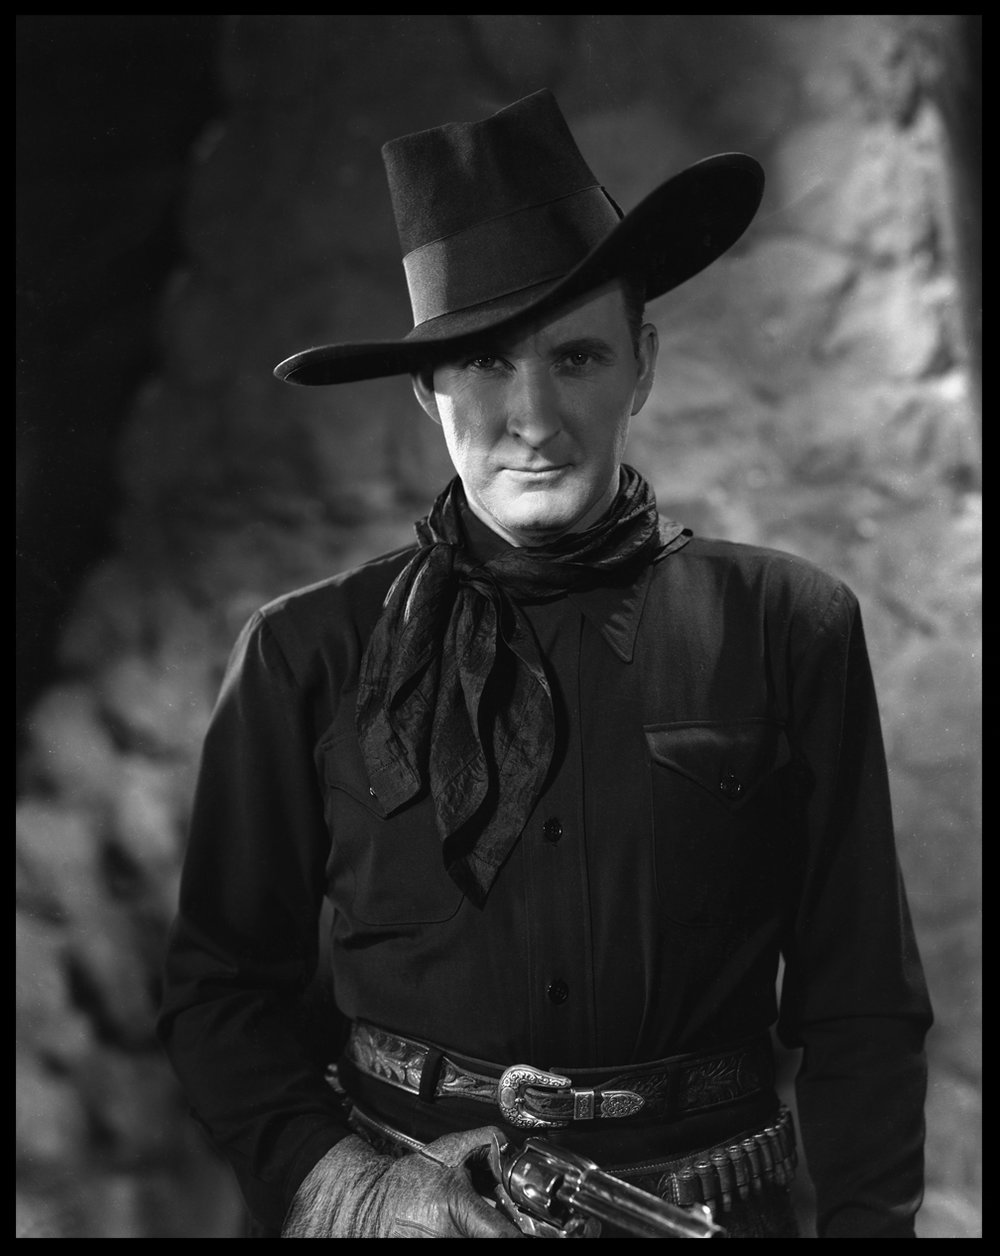 Tim McCoy c.1935 from original 8x10 negative